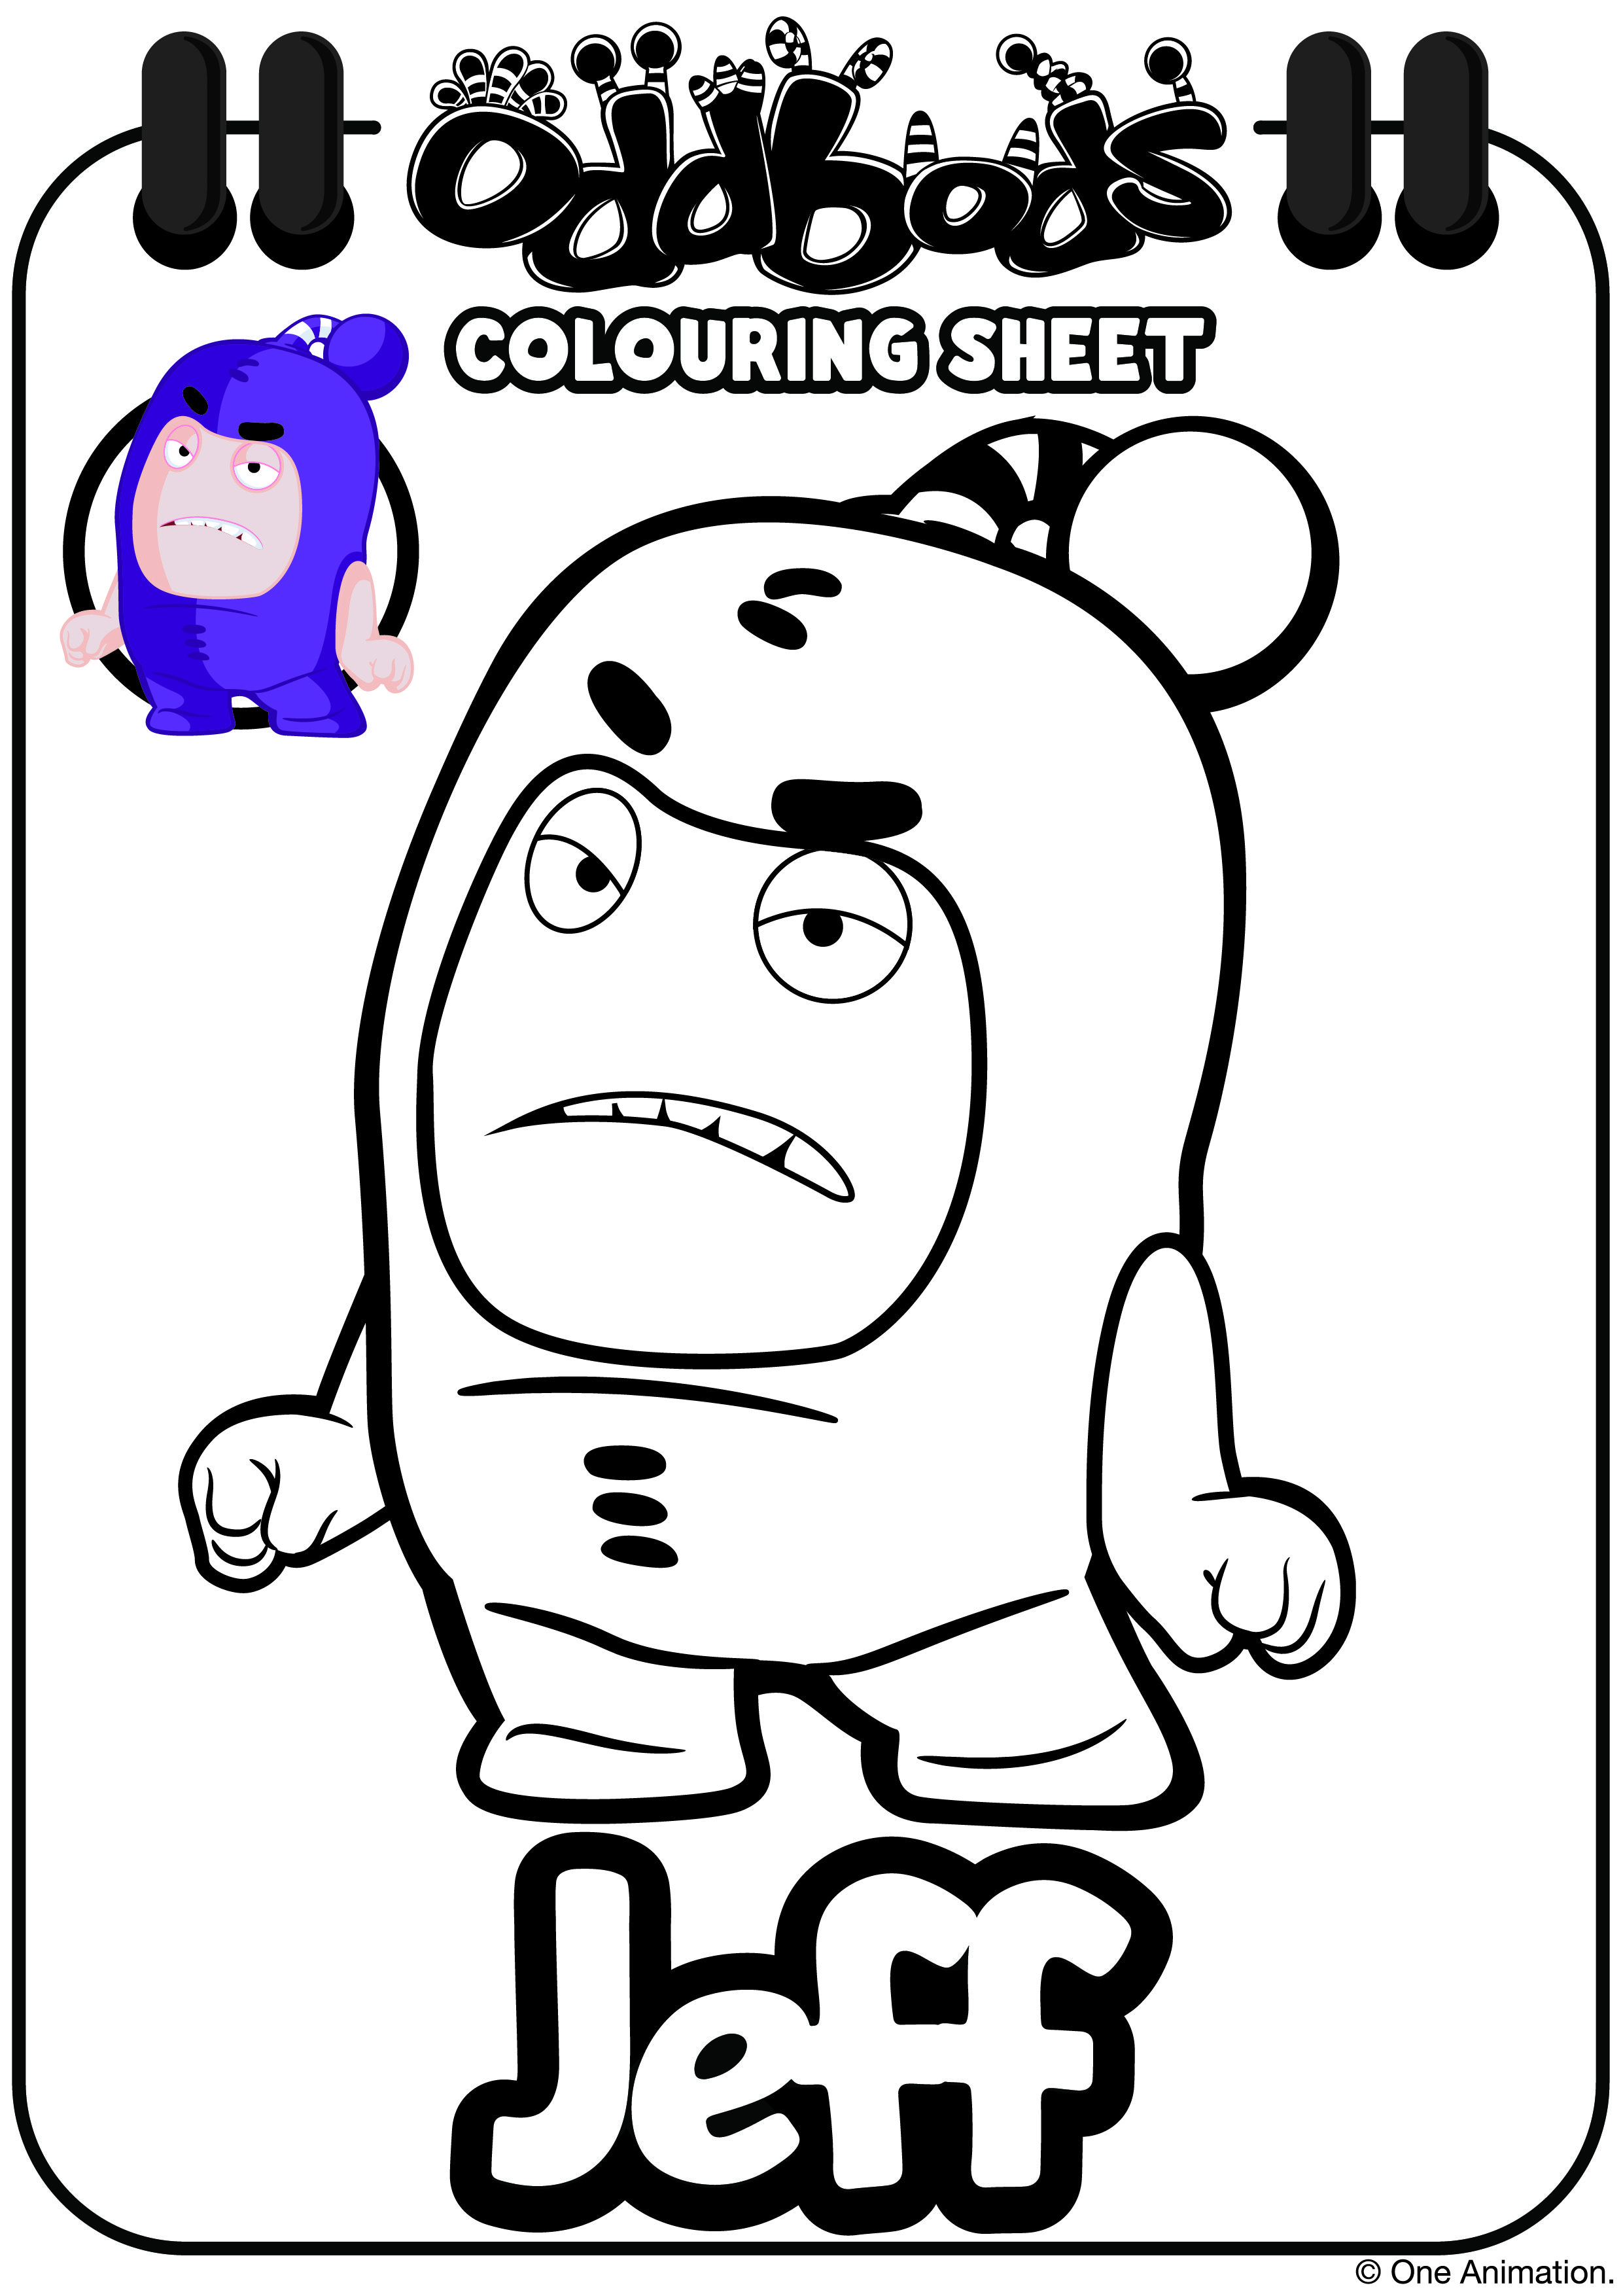 Oddbods Colouring Sheet Jeff Coloring Books Kids Coloring Books Coloring For Kids